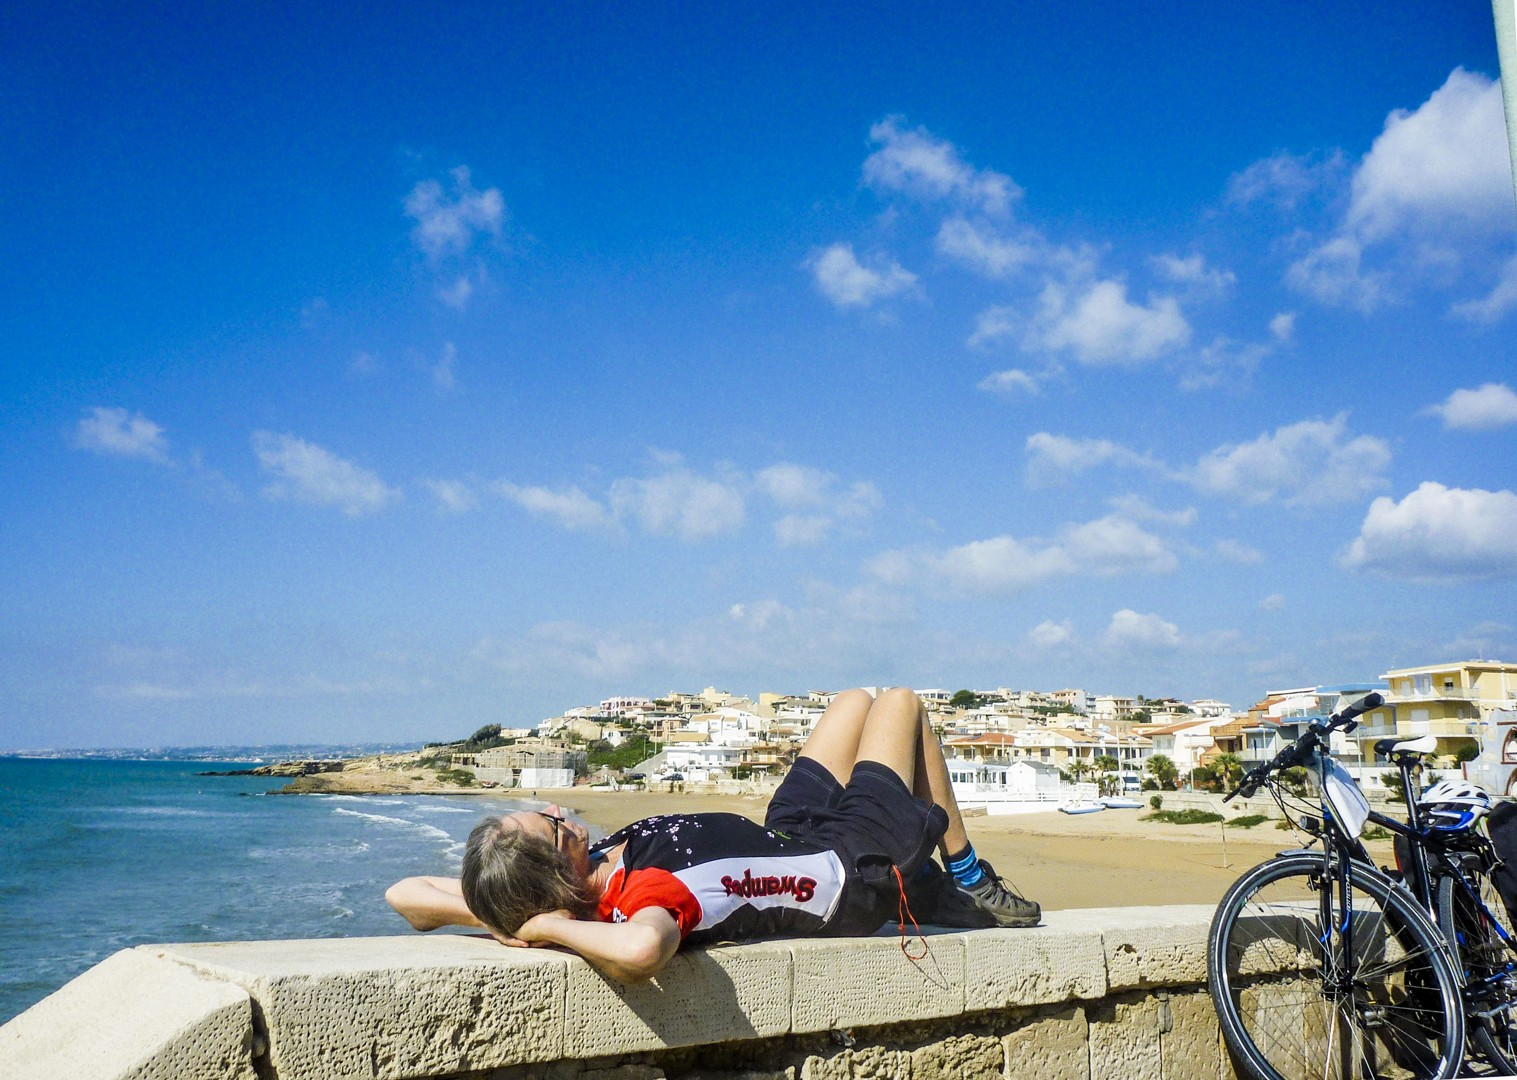 relaxing-leisure-cycling-italy-sicily-coast-saddle-skedaddle.jpg - Italy - Sicily - Self-Guided Leisure Cycling Holiday - Italia Leisure and Family Cycling